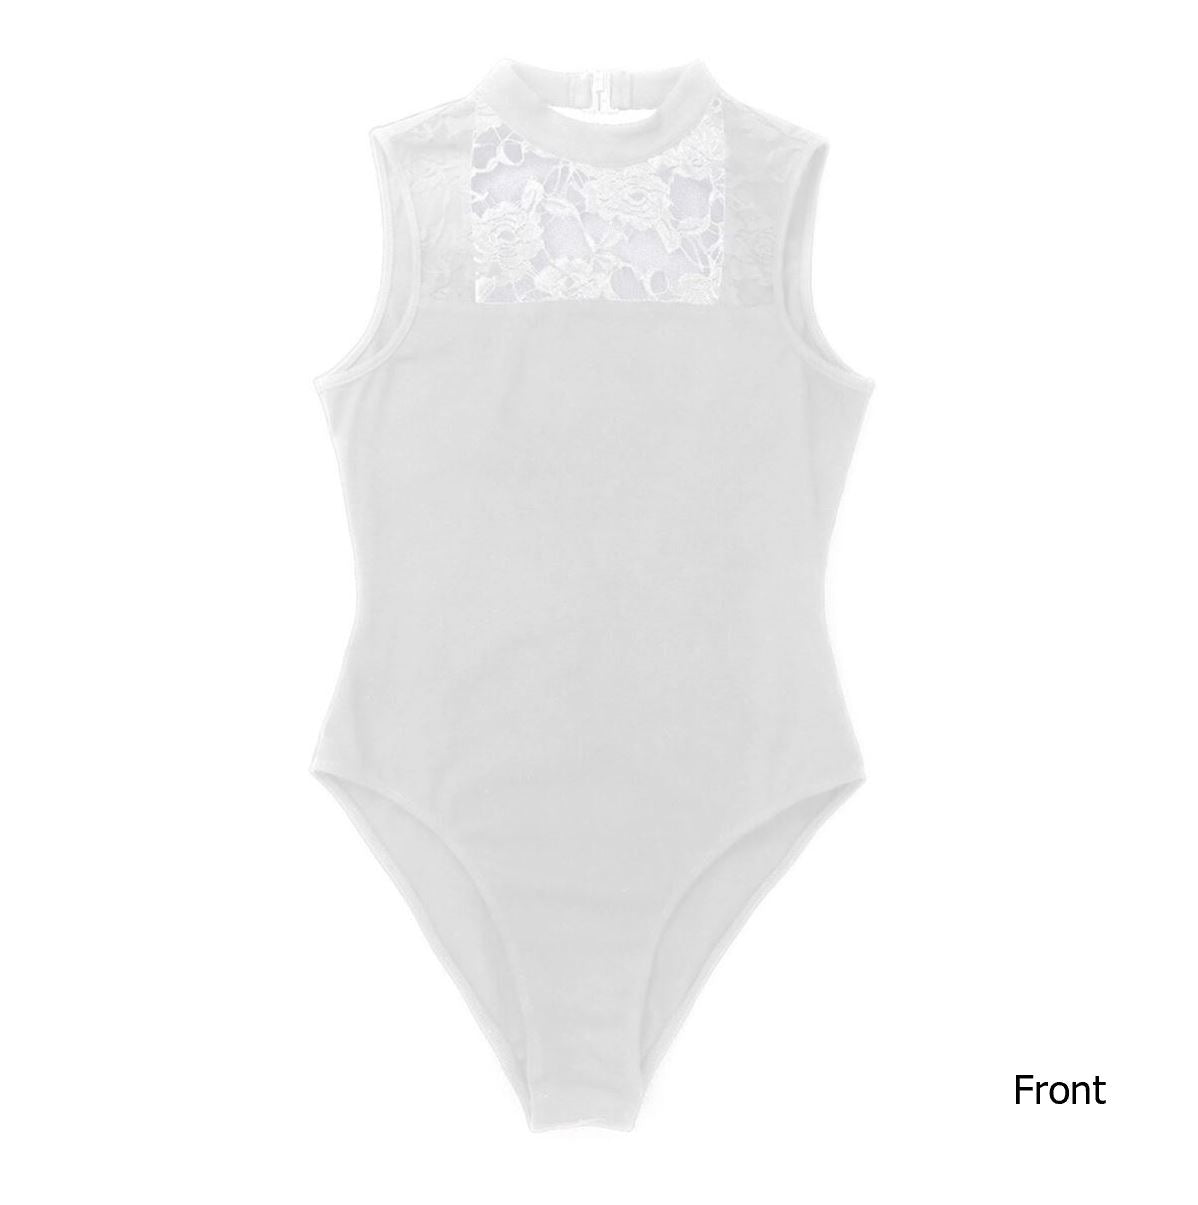 White in colour, front view of women's dance leotard with front lace panel design. Pas de bourree dancewear. Pasdebourreedancewear.